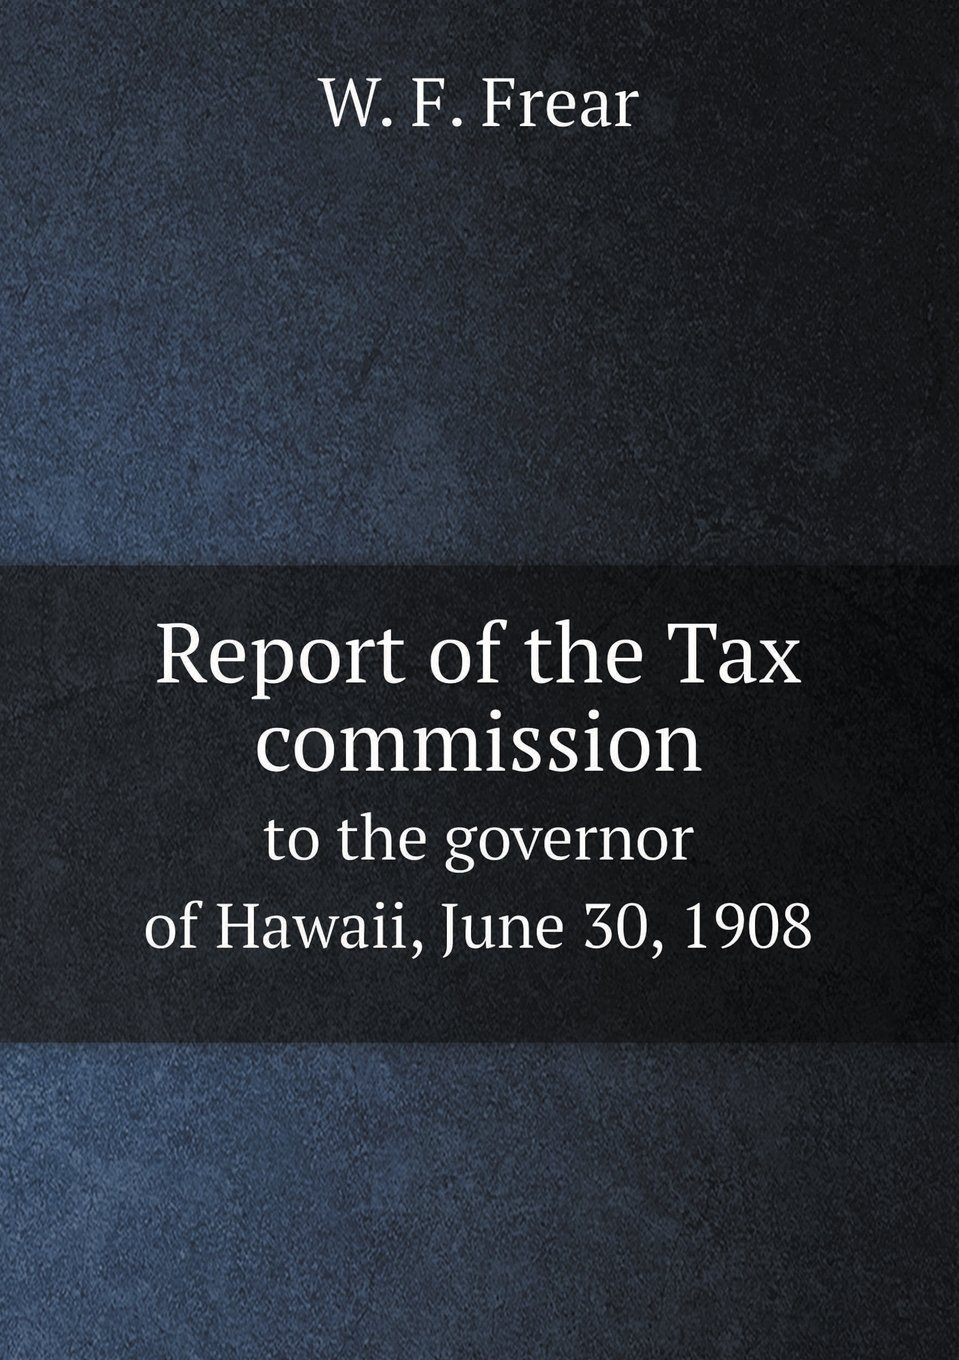 Report of the Tax Commission to the Governor of Hawaii, June 30, 1908 pdf